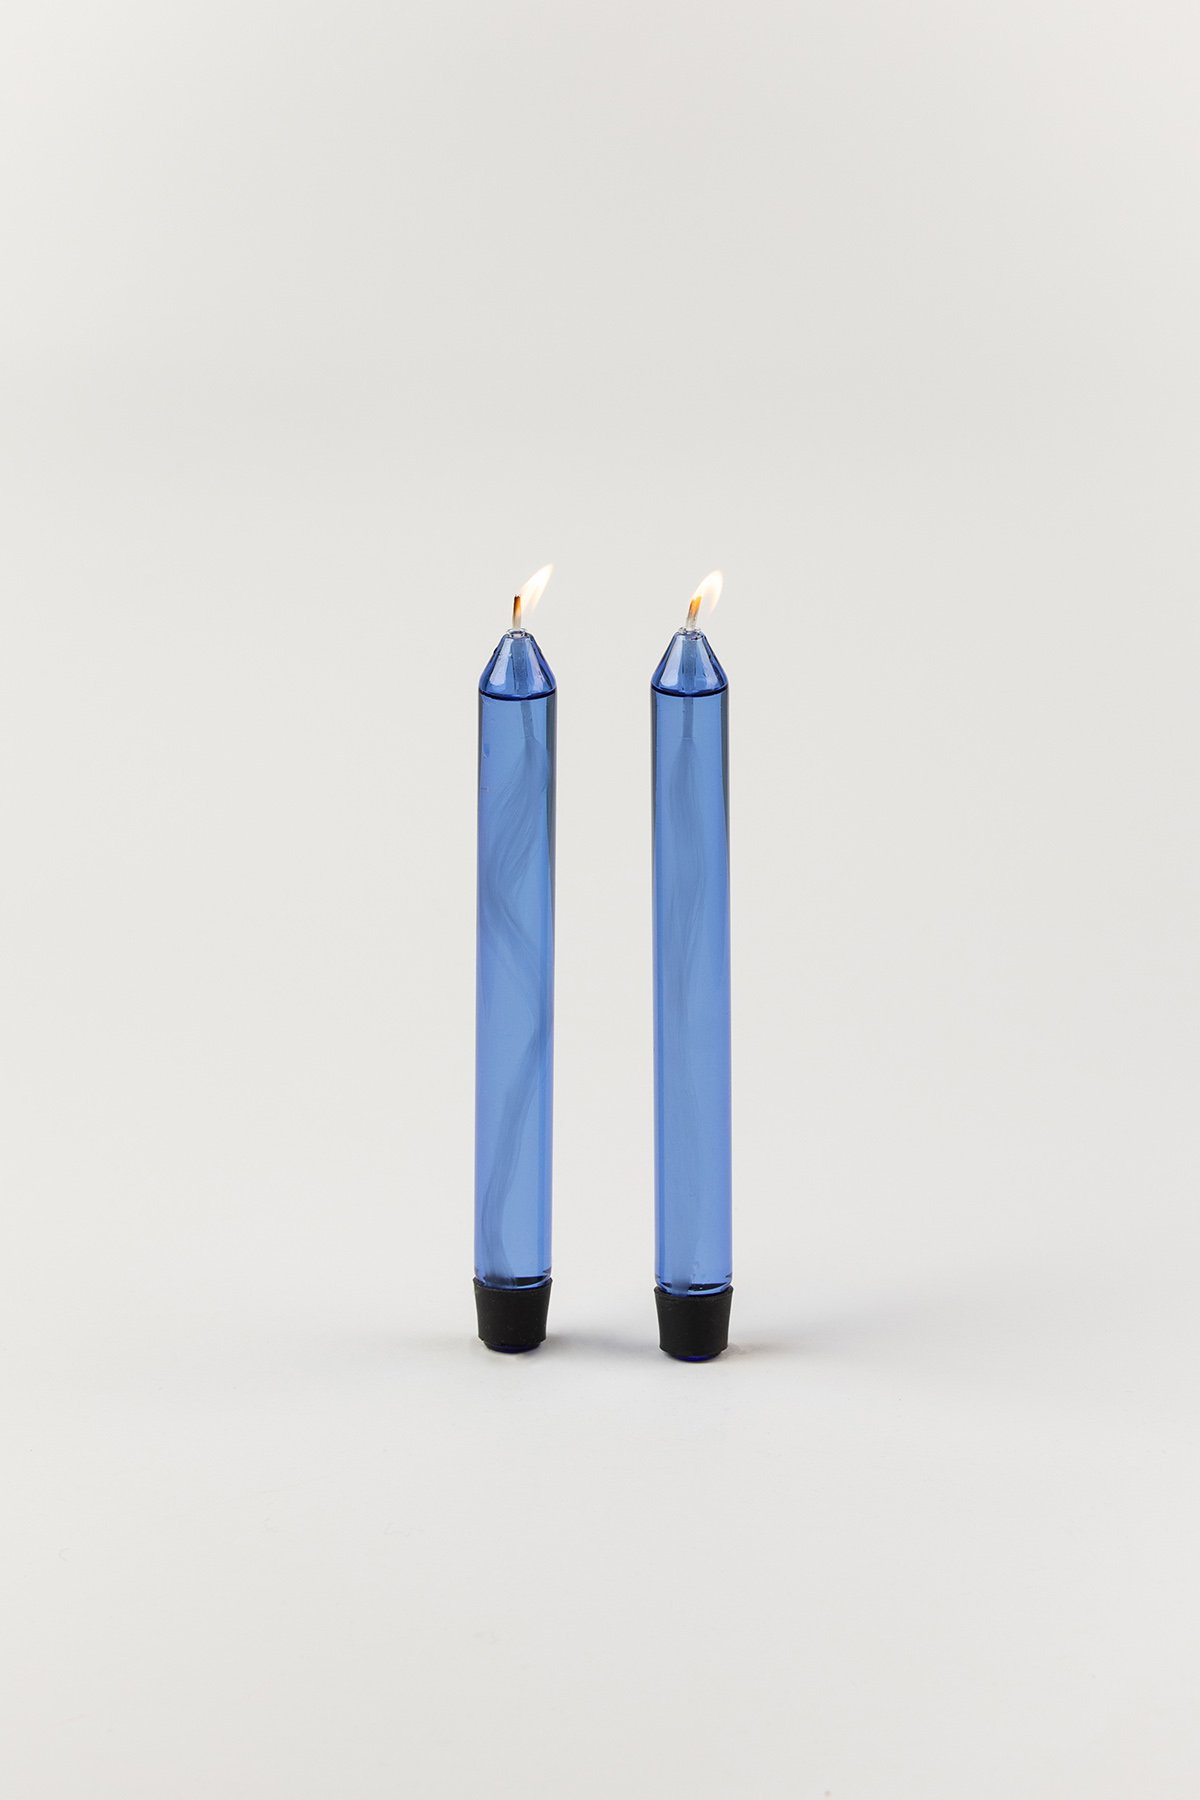 Studio About Glass Candle Oil Blue 2-pack